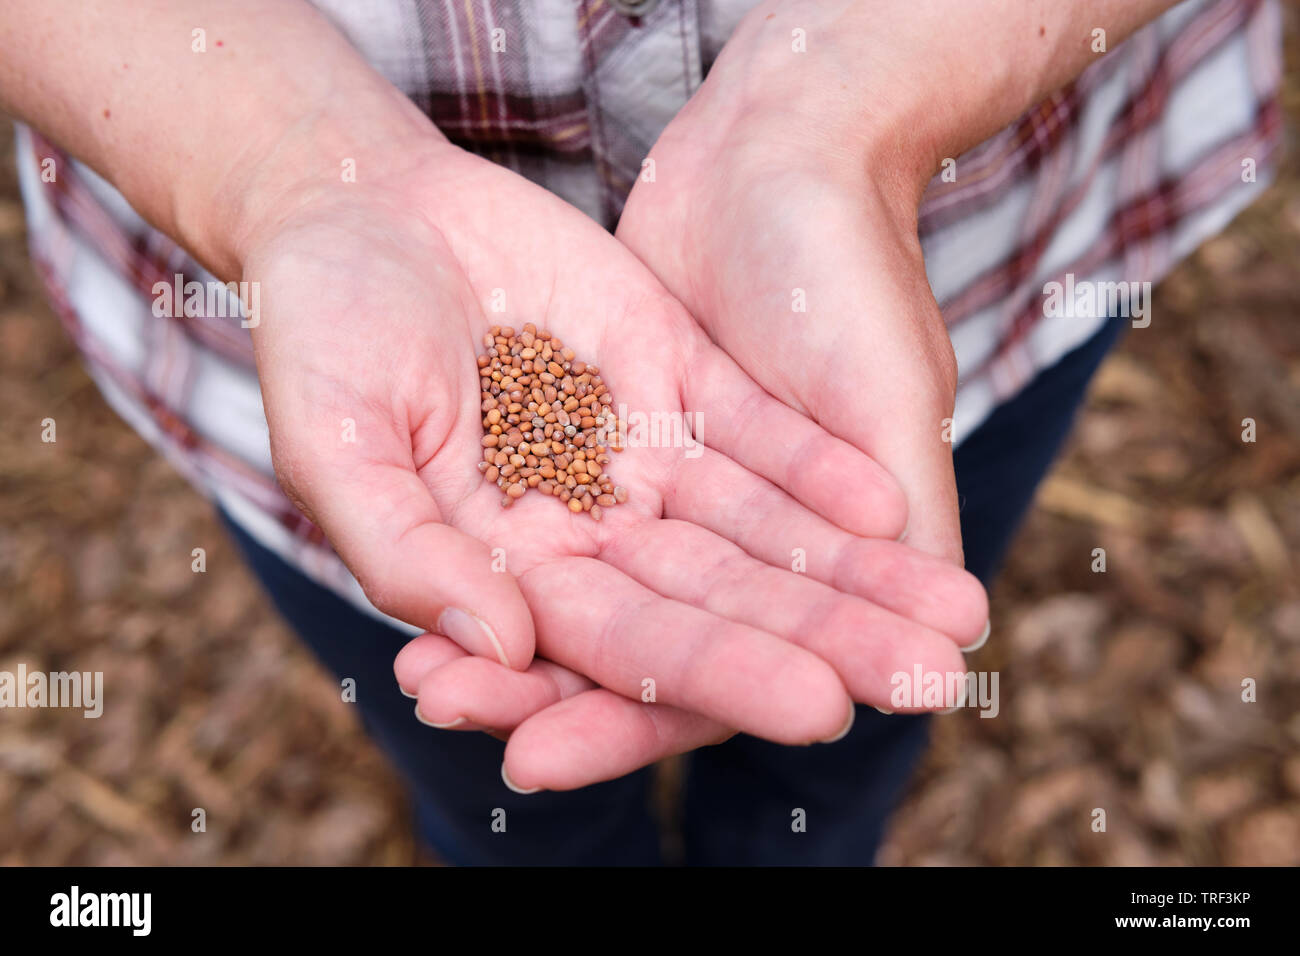 Caucasian woman holding Radish 'Candela di fuoco' plant seeds in open hands. - Stock Image